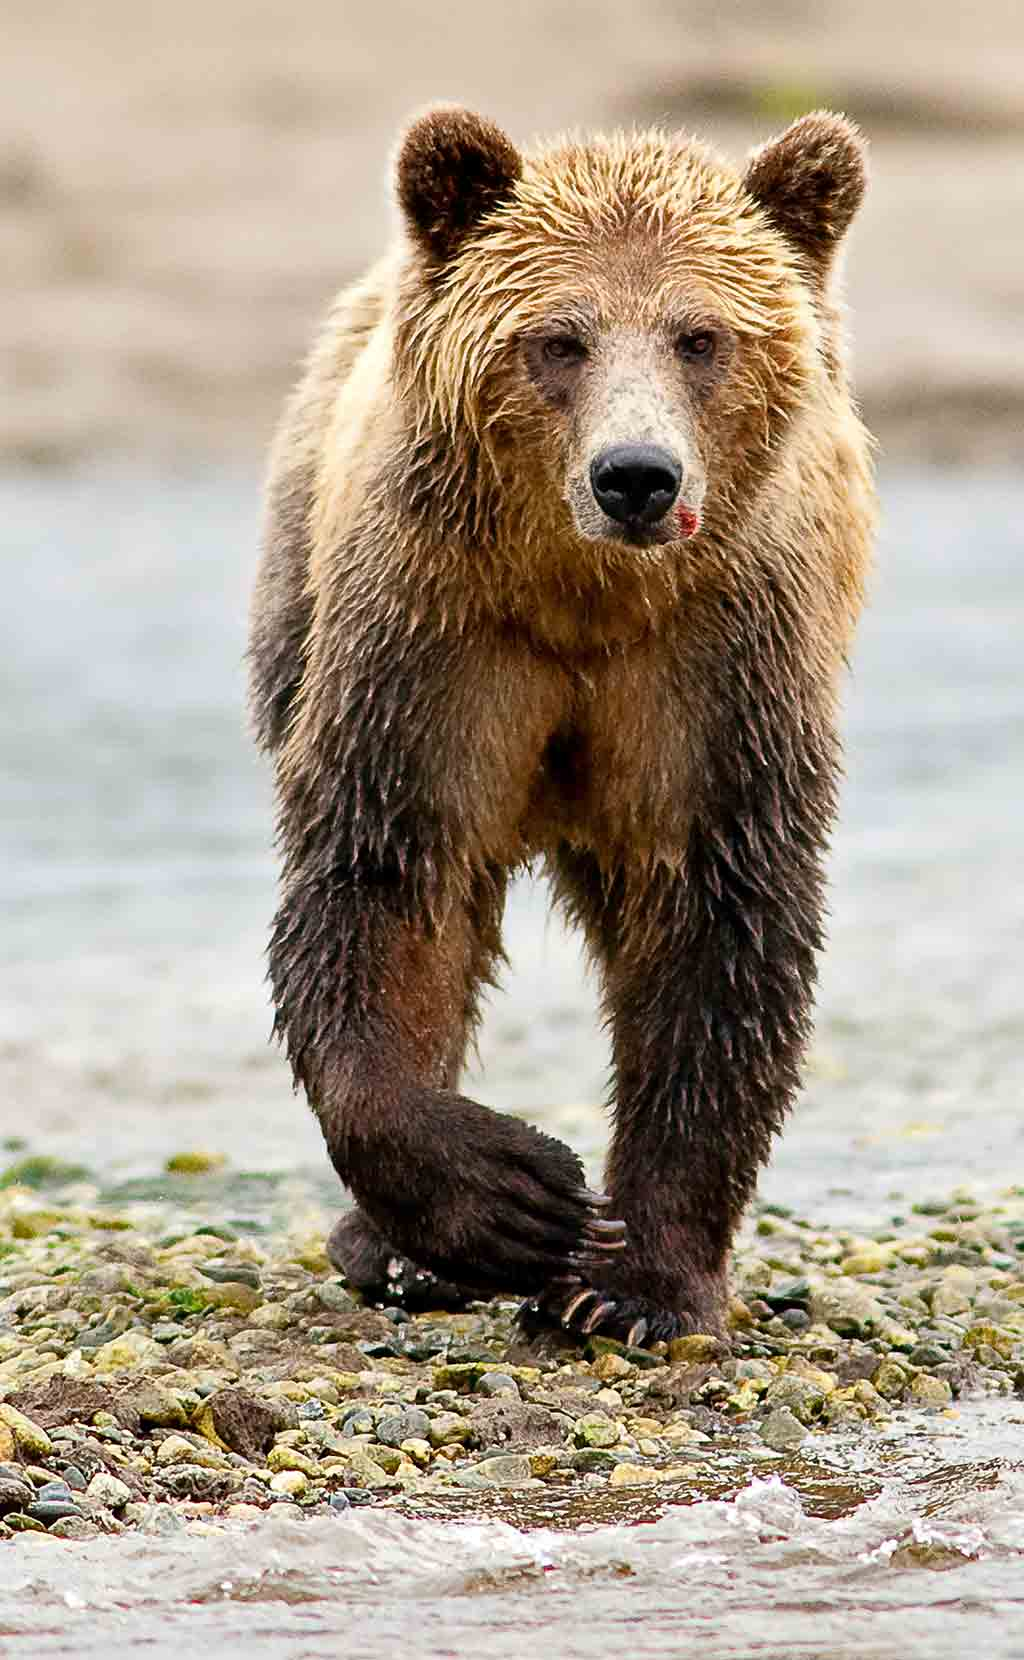 North American brown 'grizzly' bear